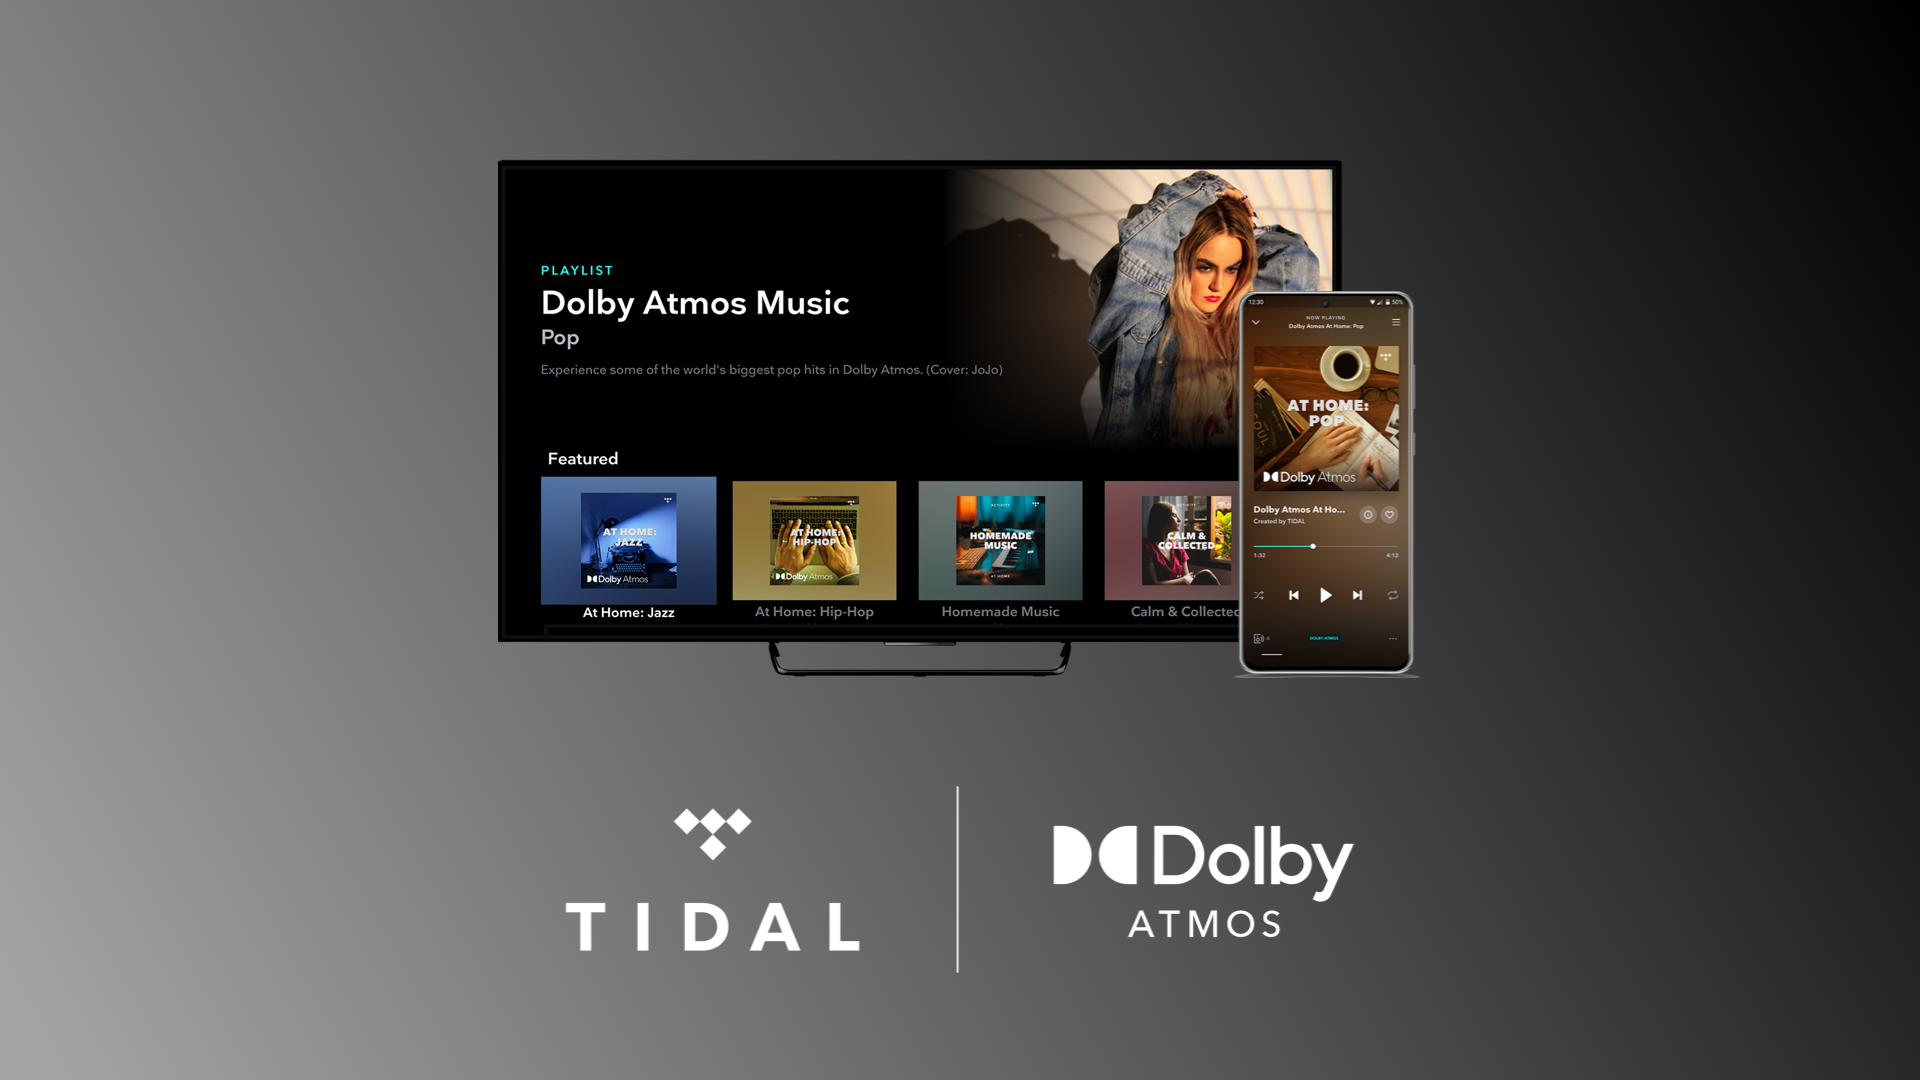 Tidal Music Streaming Service Brings Dolby Atmos Music to The Apple TV 4K